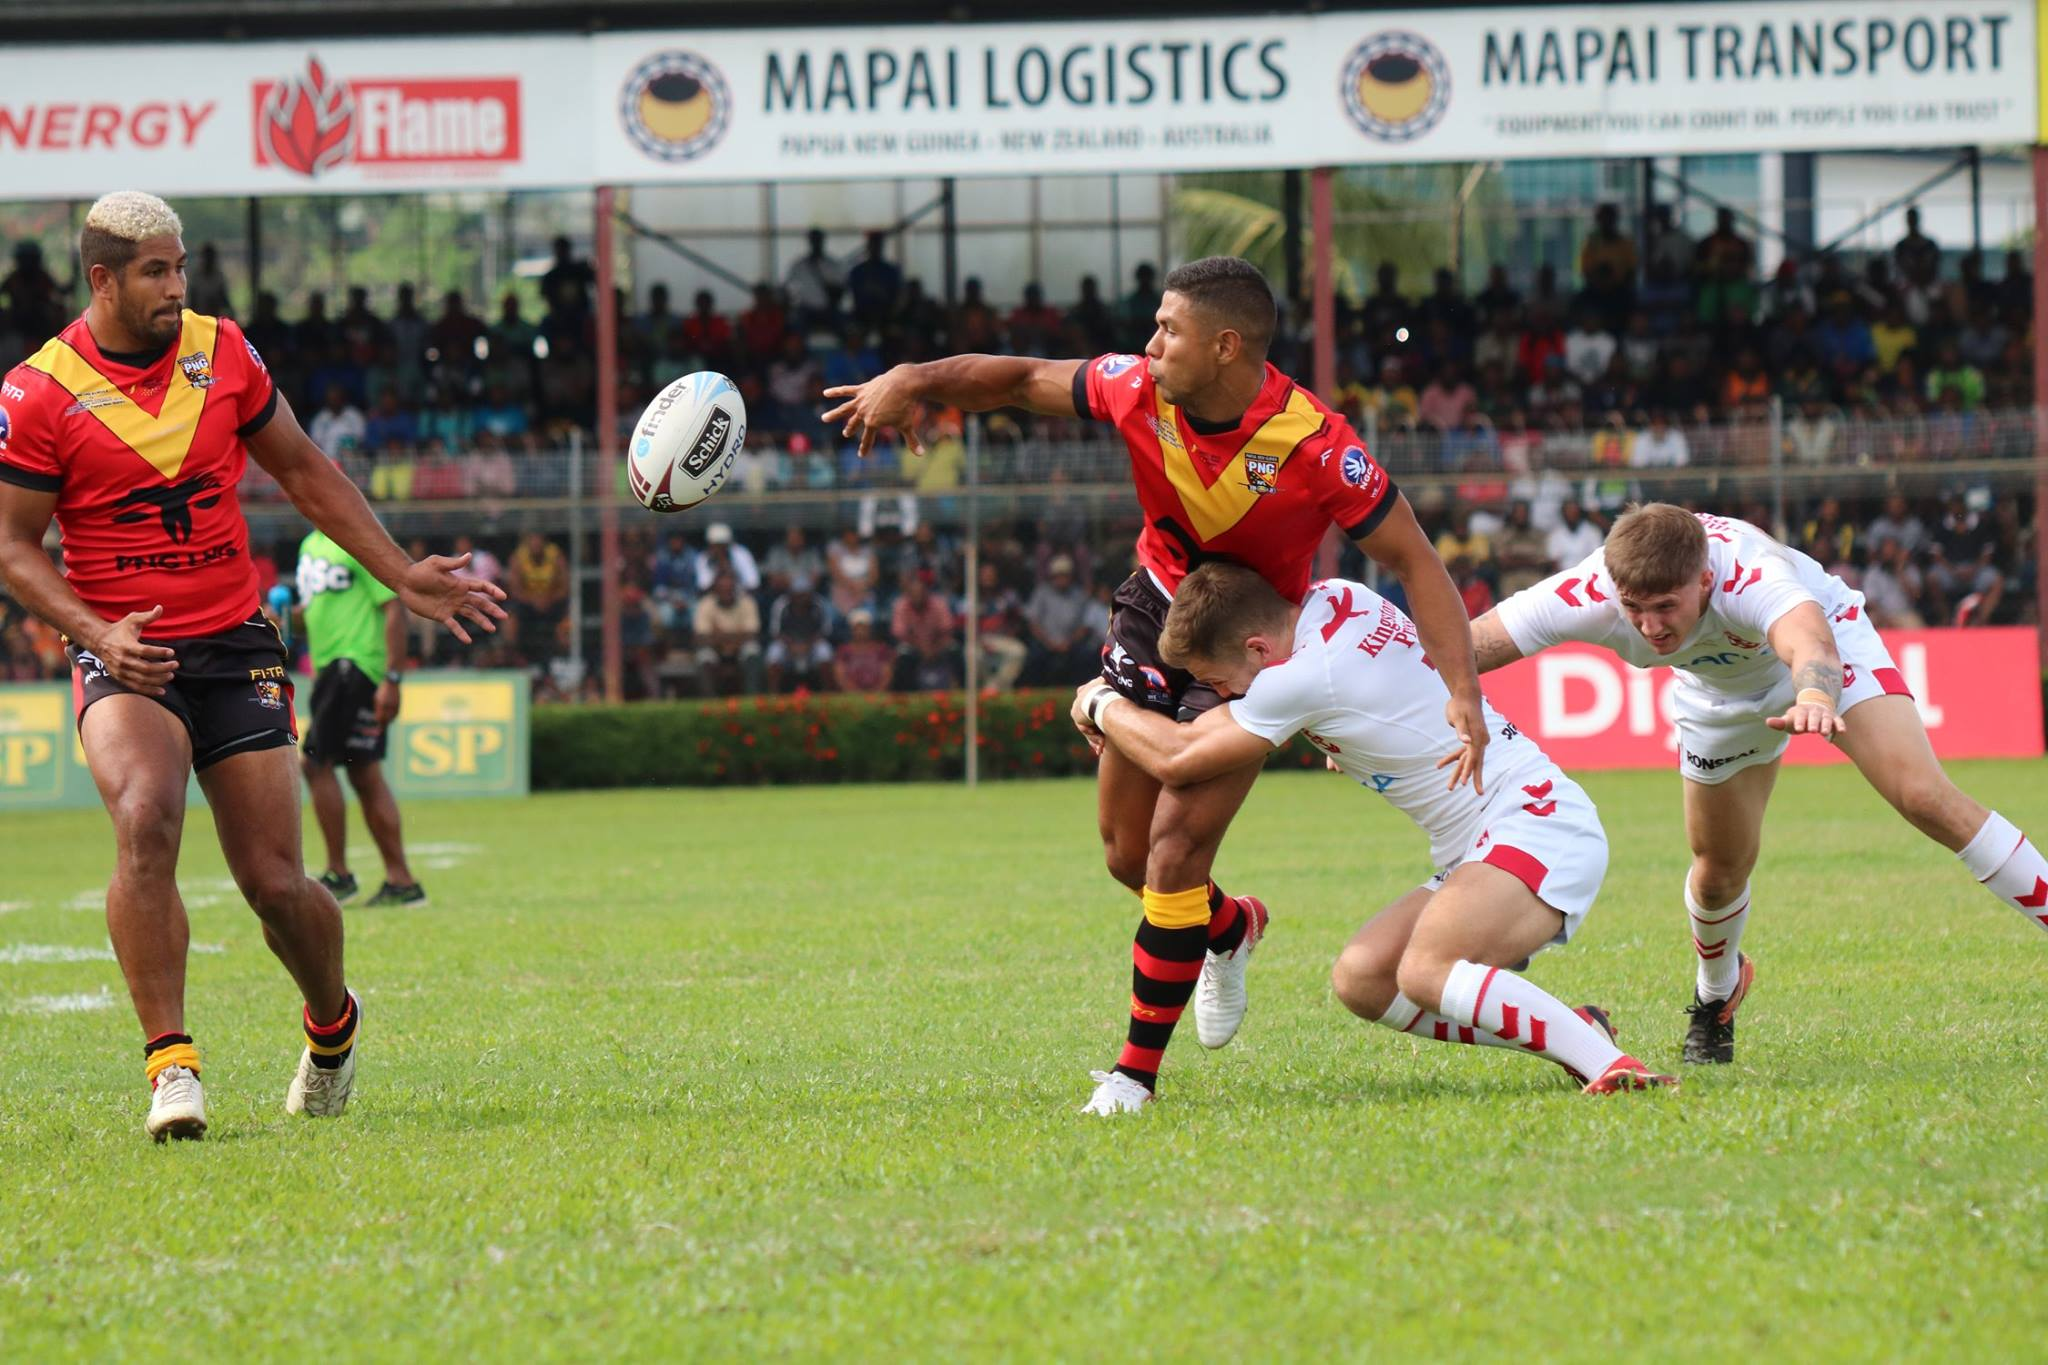 England Knights name squad to take on PNG in Port Moresby